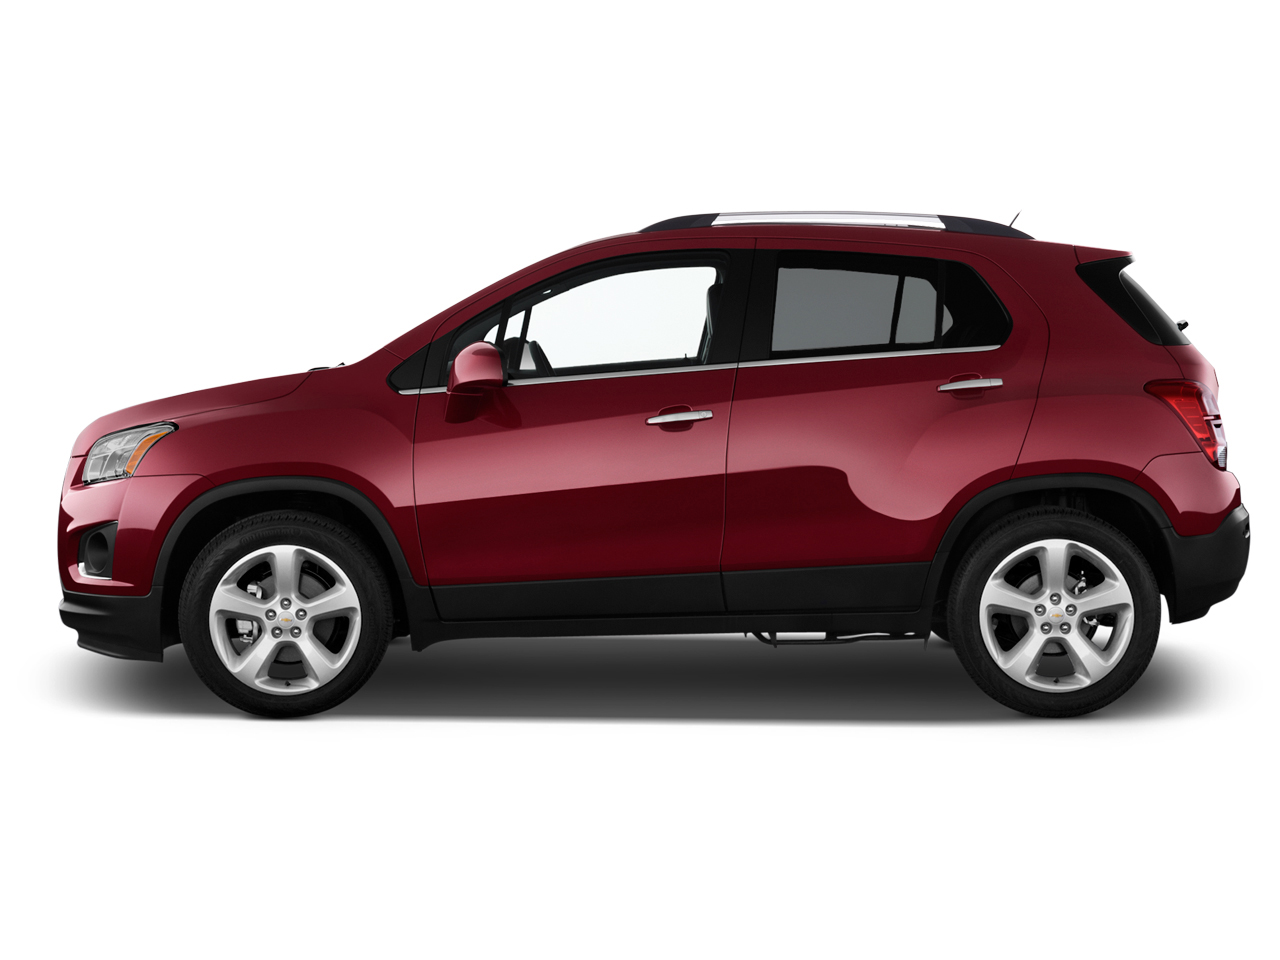 2016 Chevrolet Trax (Chevy) Review, Ratings, Specs, Prices, and Photos ...